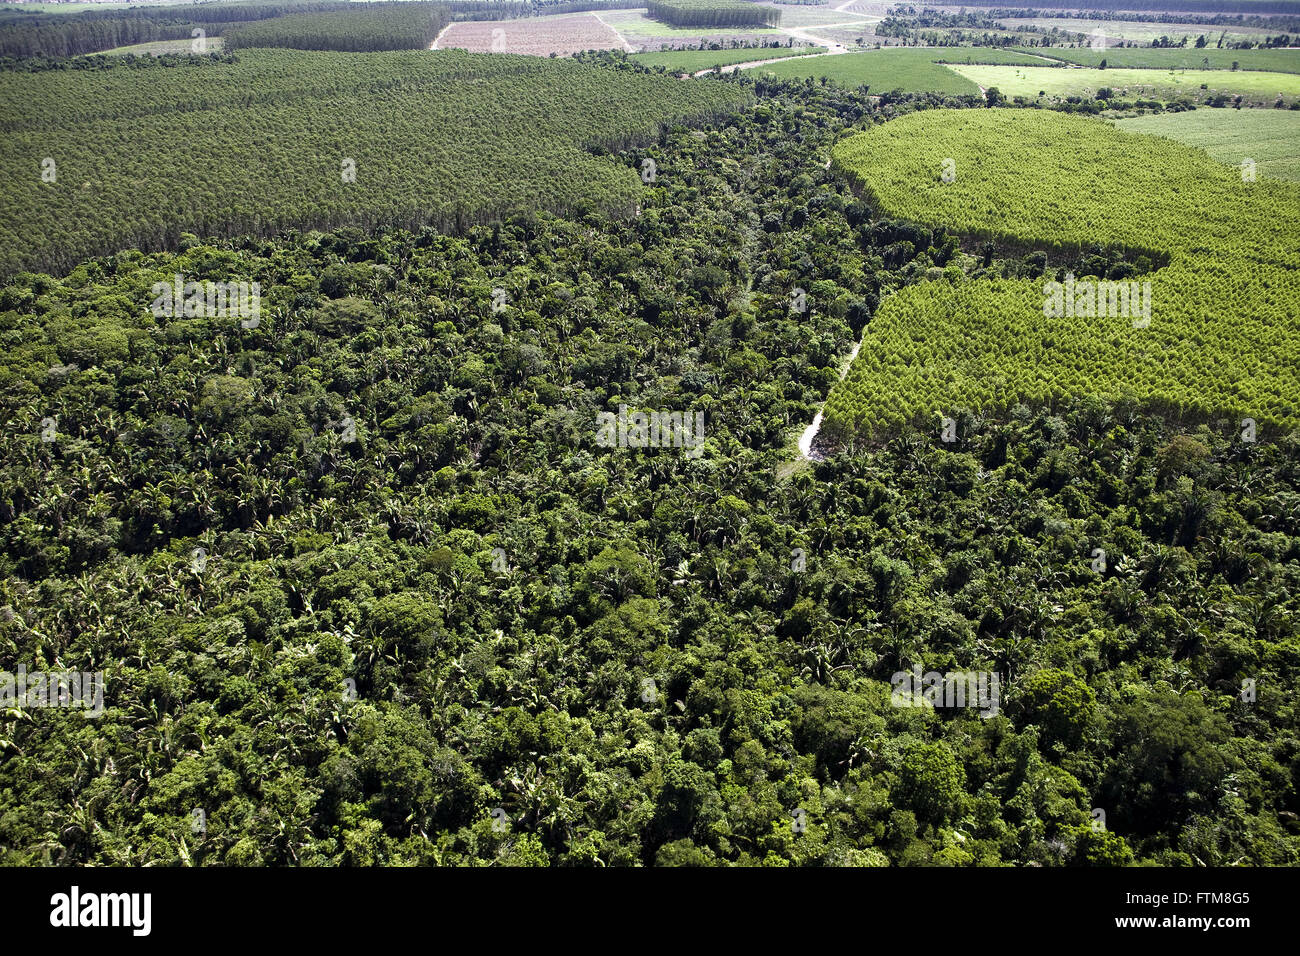 Forest of eucalyptus pulp and paper companies along the area of environmental preservation - Stock Image